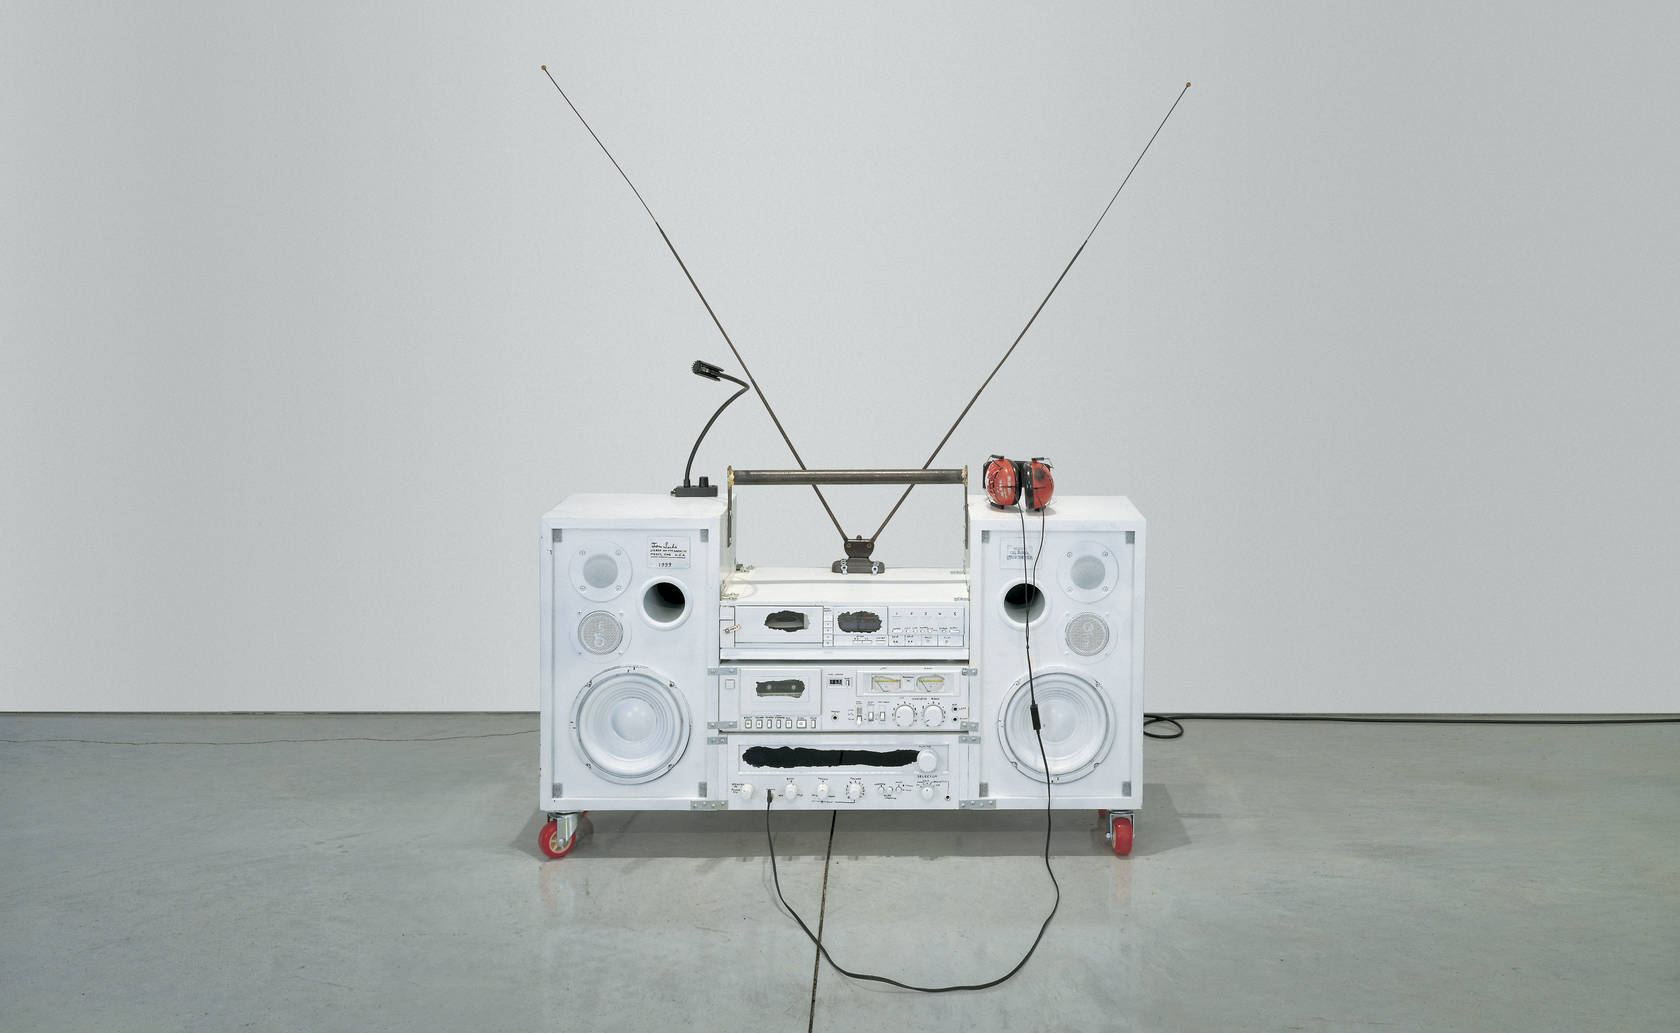 IMAGE: Tom Sachs, Model One, 1999. Mixed media. 32 x 41 x 14 inches. Collection of Shelley Fox Aarons and Philip Aarons, New York. Image courtesy Tom Sachs Studio.